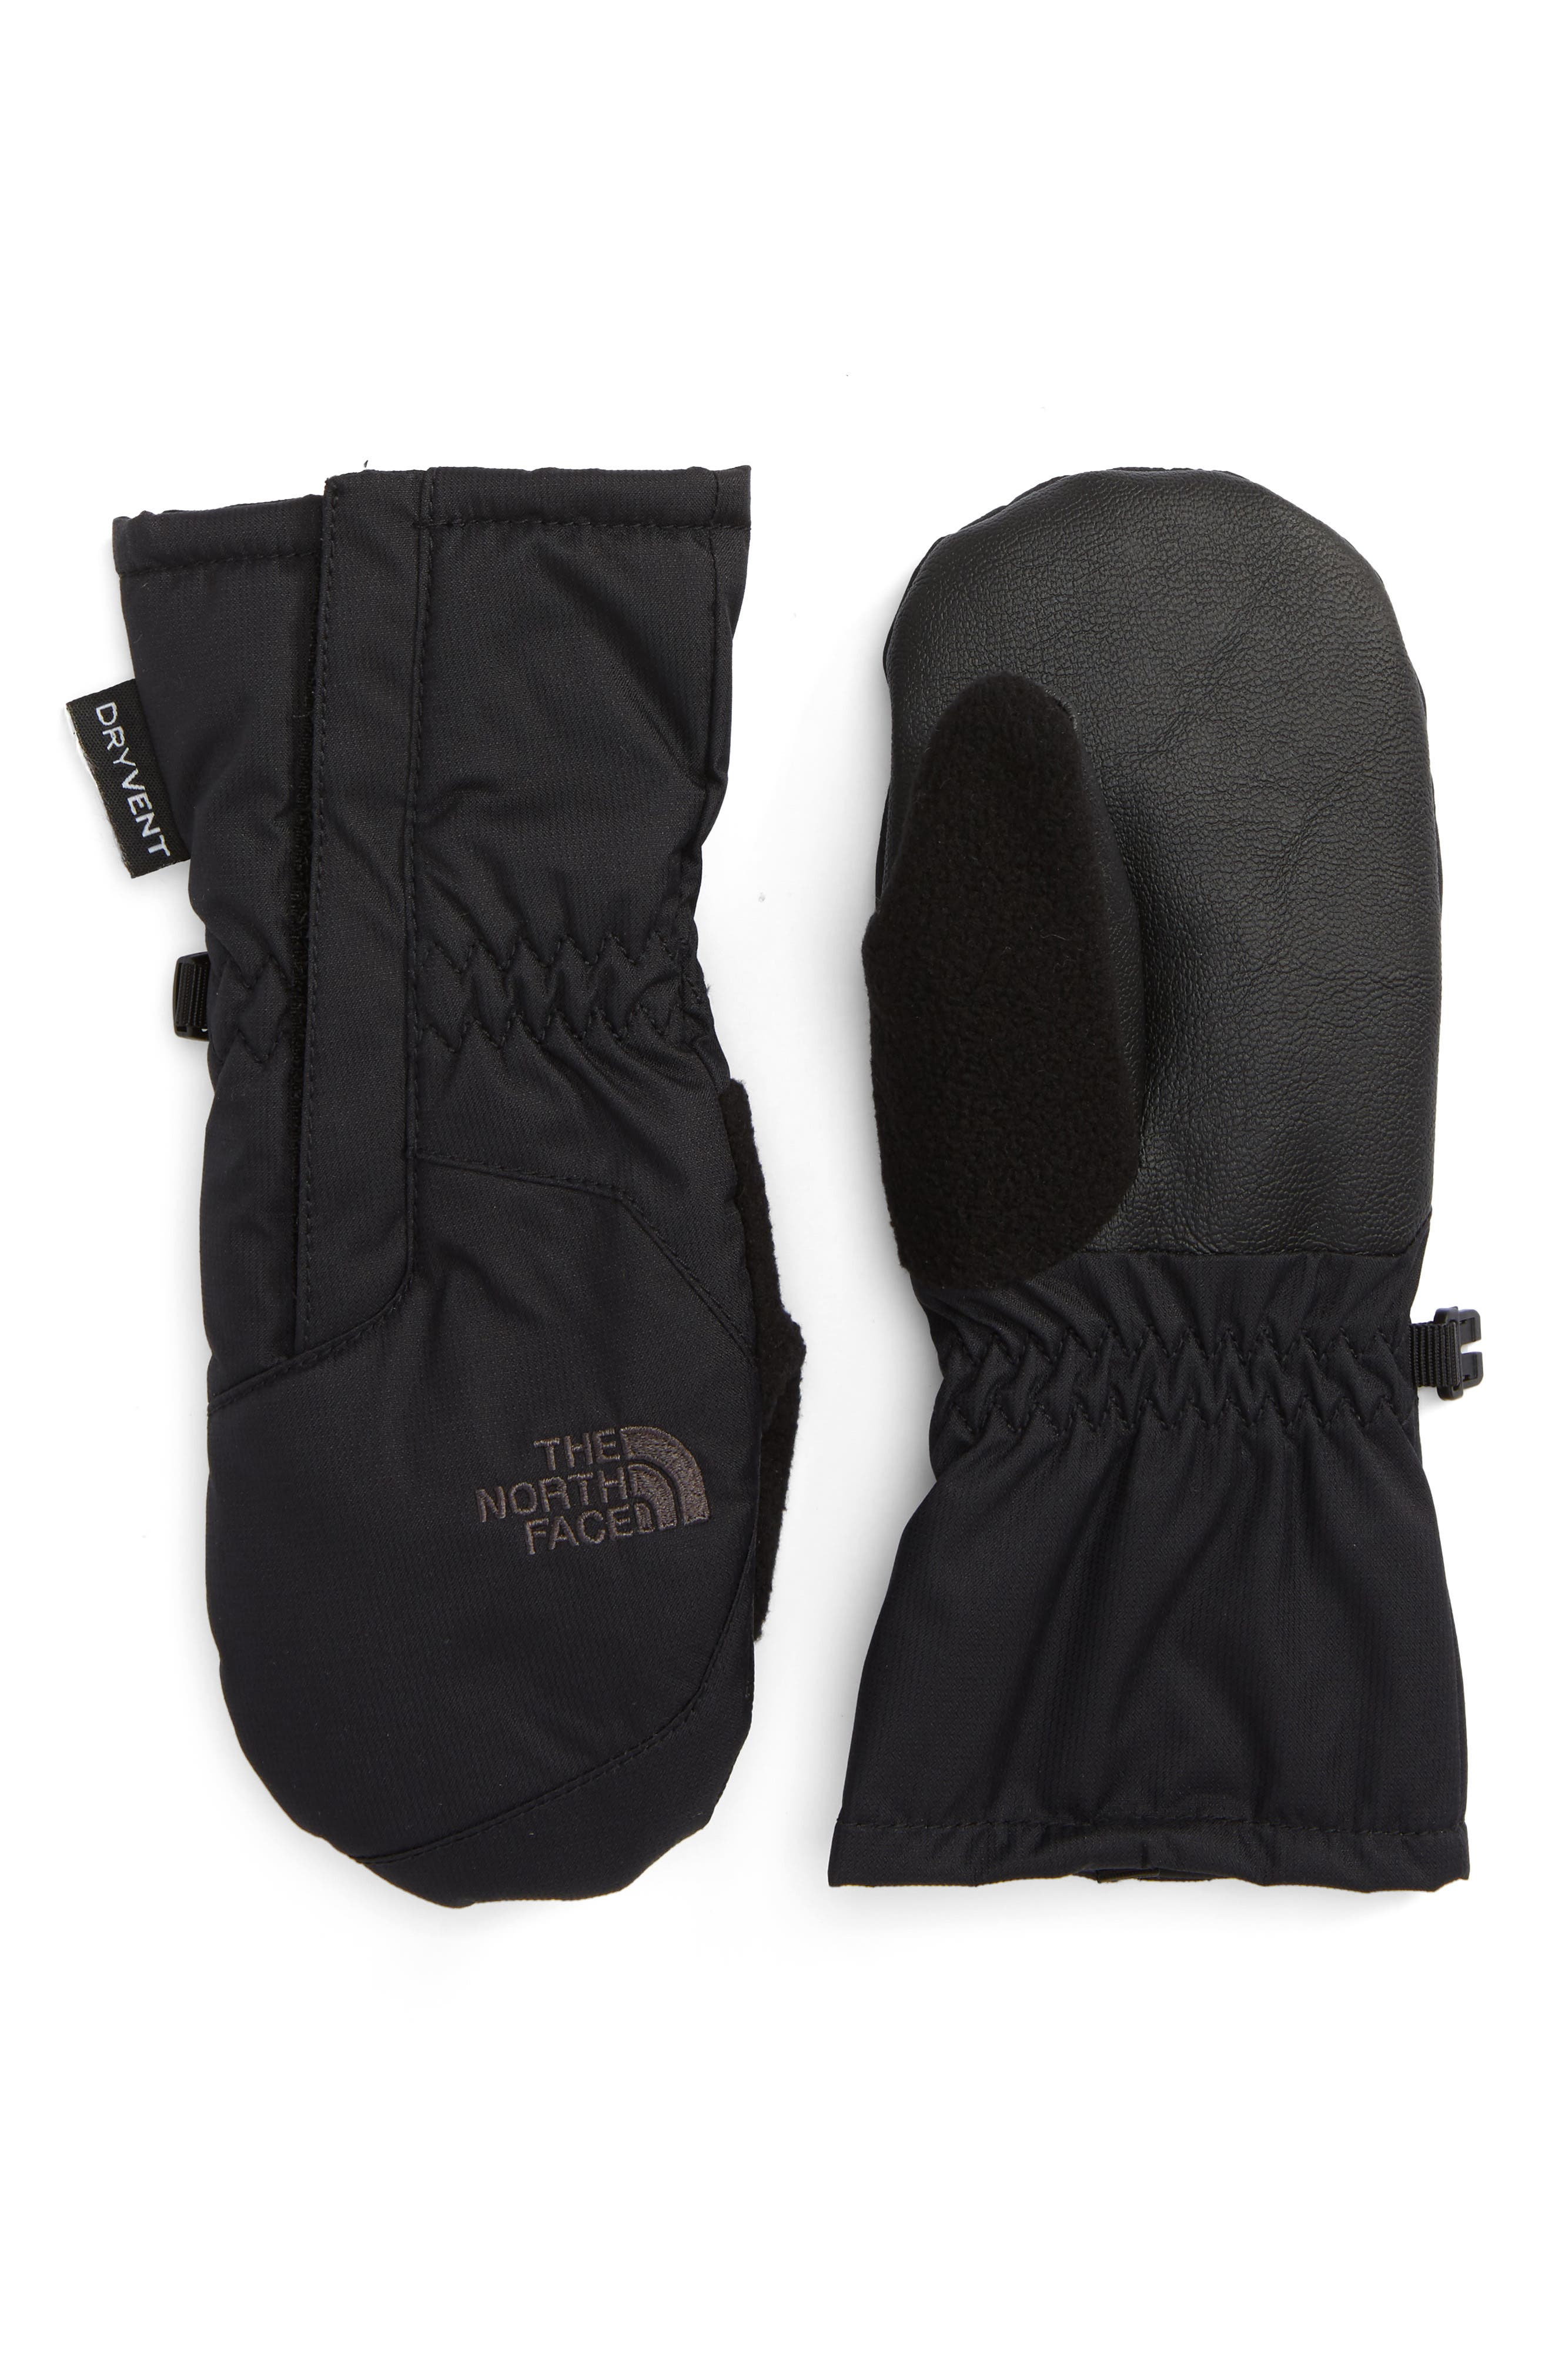 Alternate Image 1 Selected - The North Face Heatseeker™ Insulated Mittens (Toddler Kids)